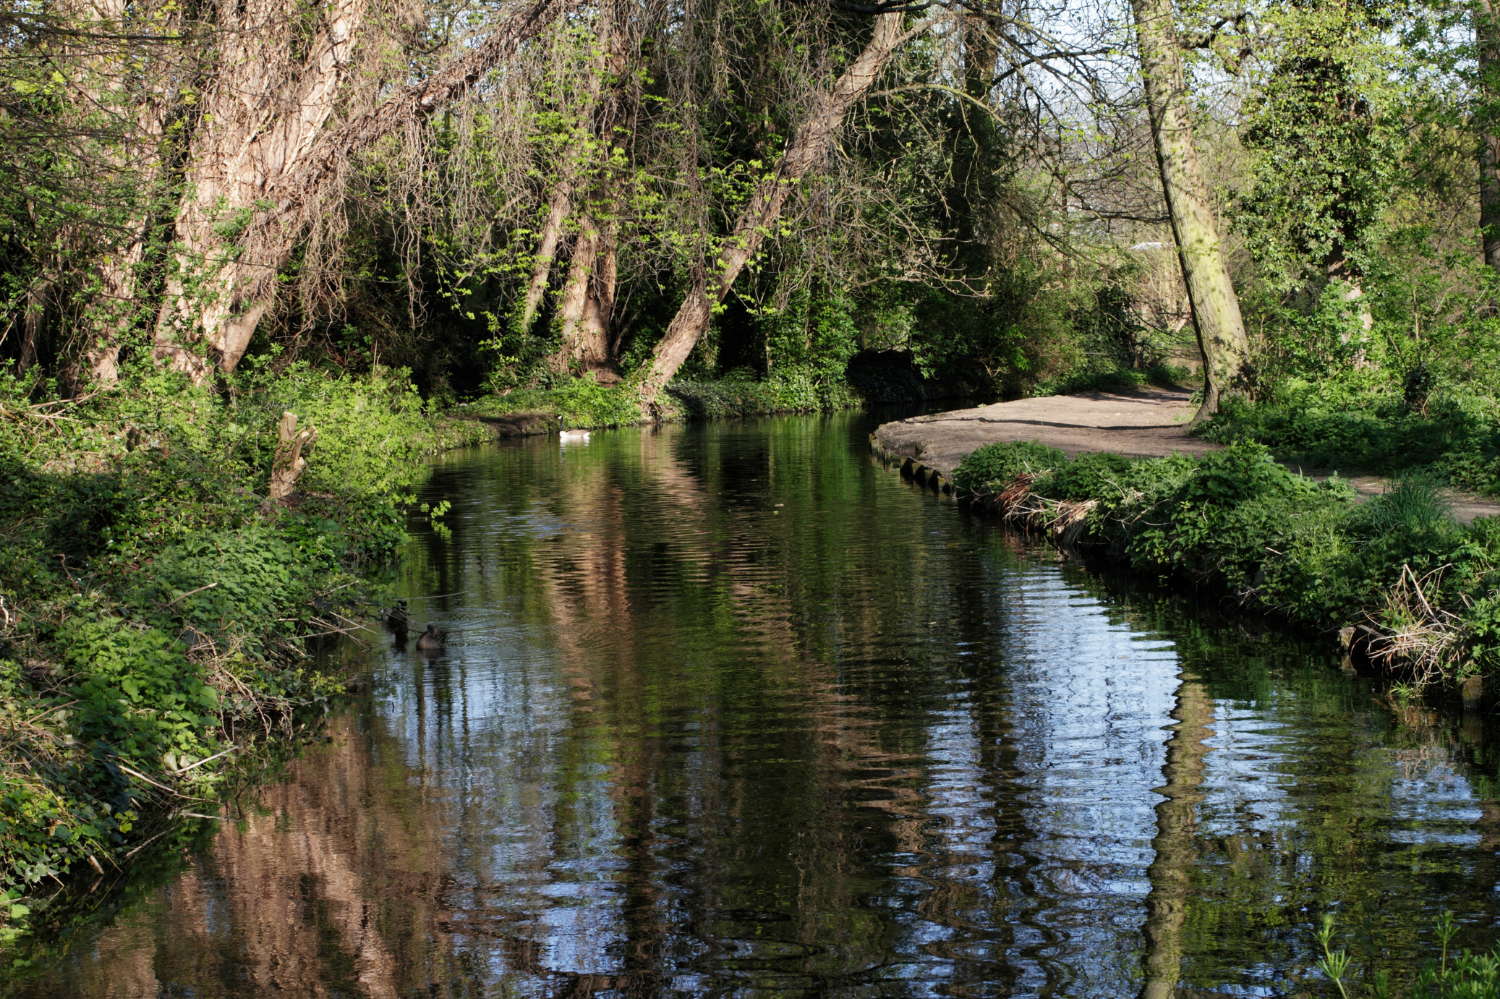 River Wandle. Phone copyright: Getty Images.